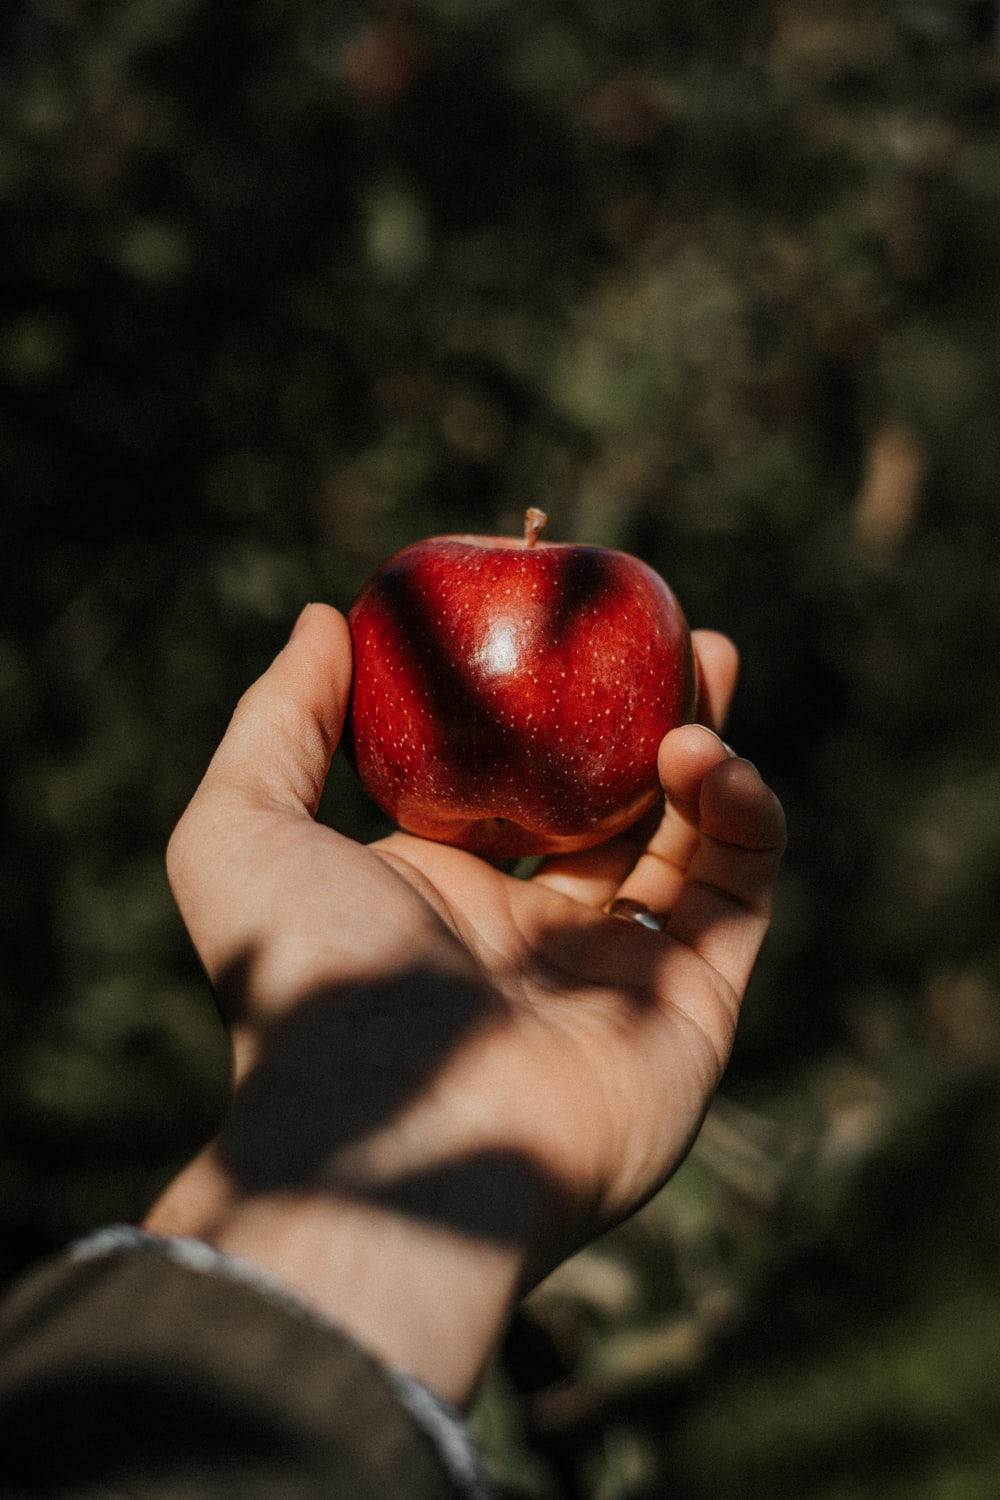 person holding red apple fruit